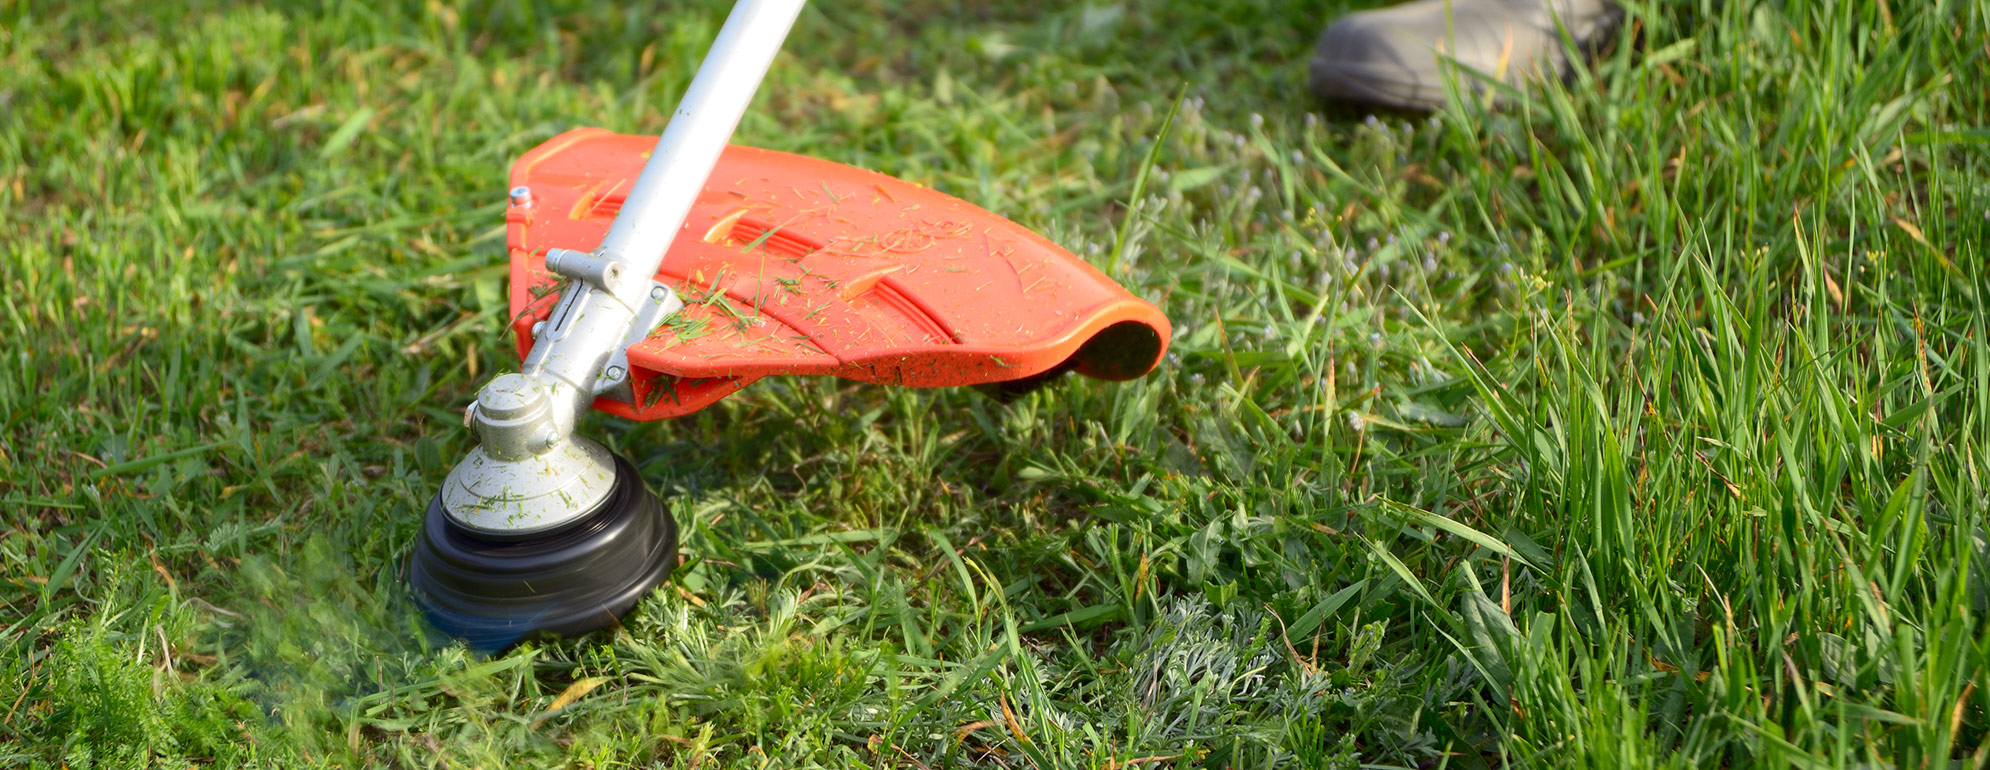 affordable lawn mowing and gardening